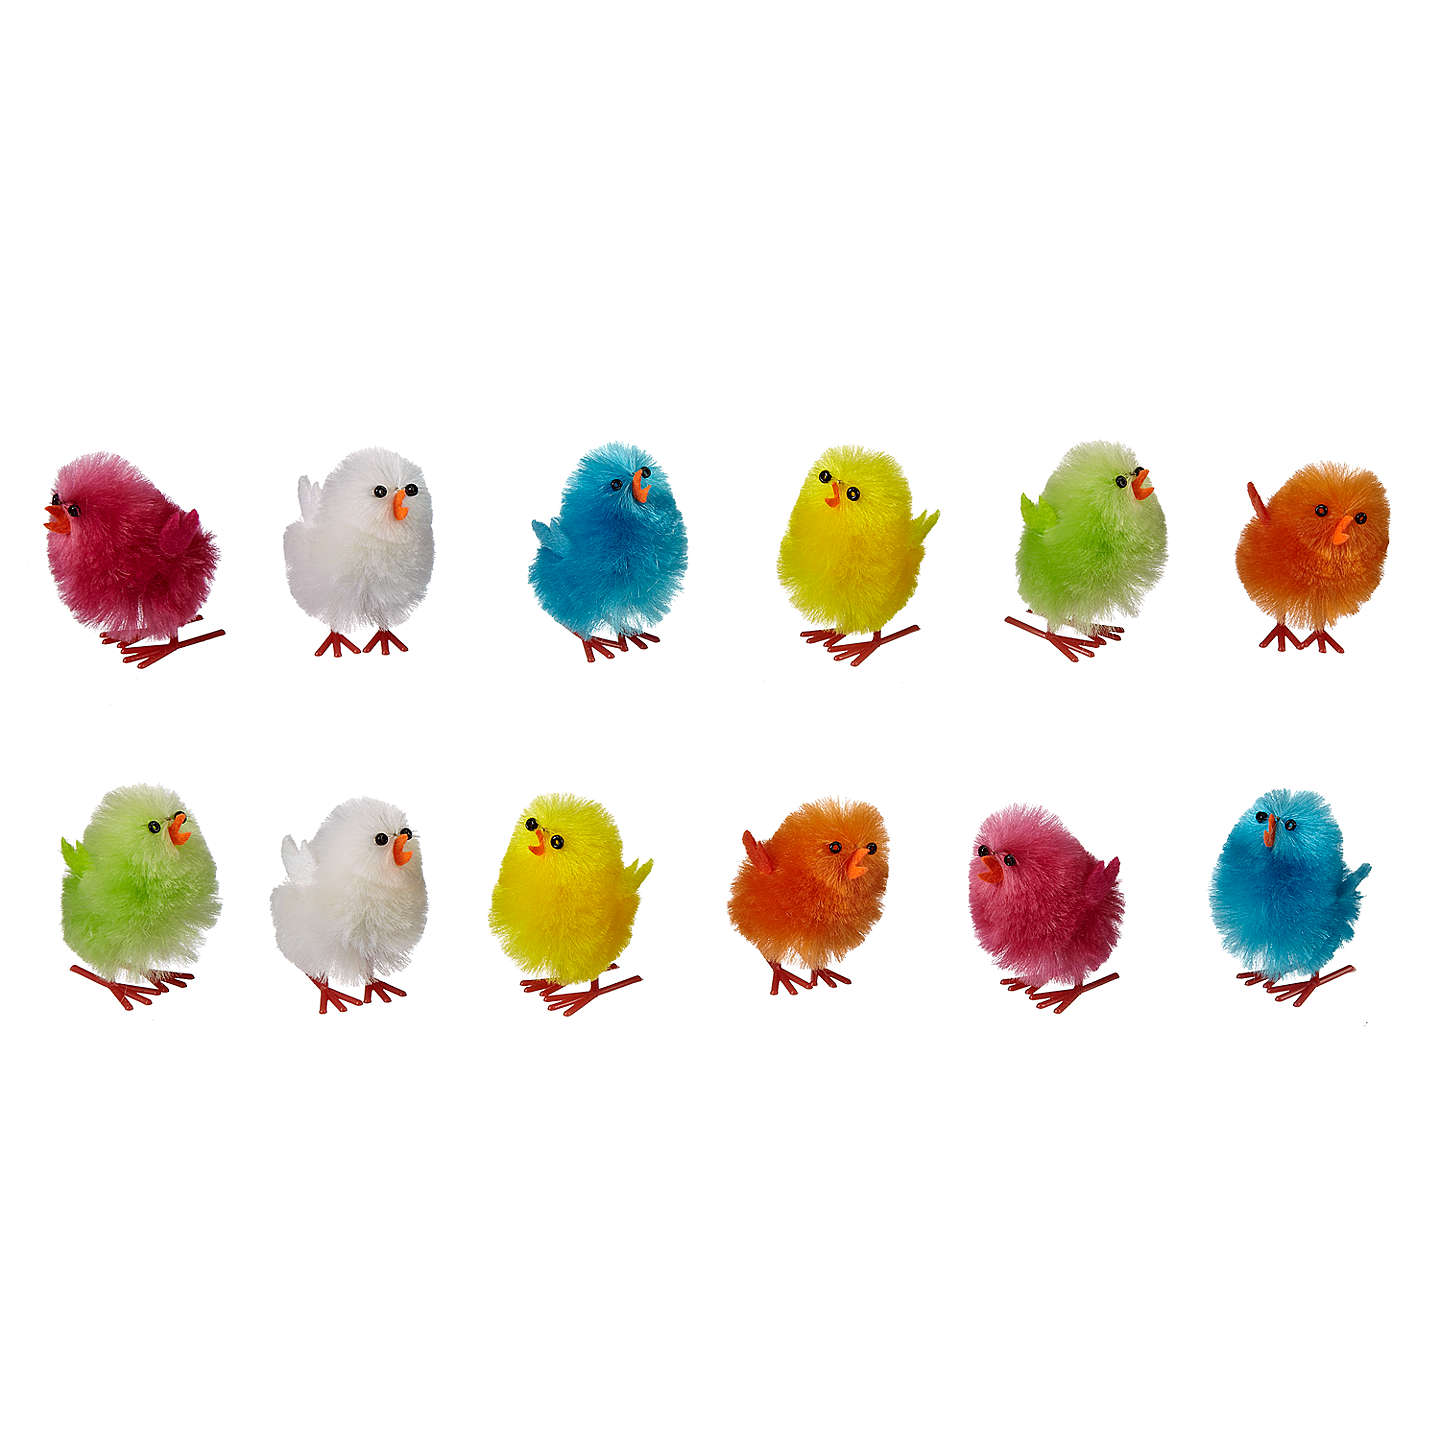 BuyJohn Lewis Multi-Coloured Fluffy Chicks, Pack of 12 Online at johnlewis.com